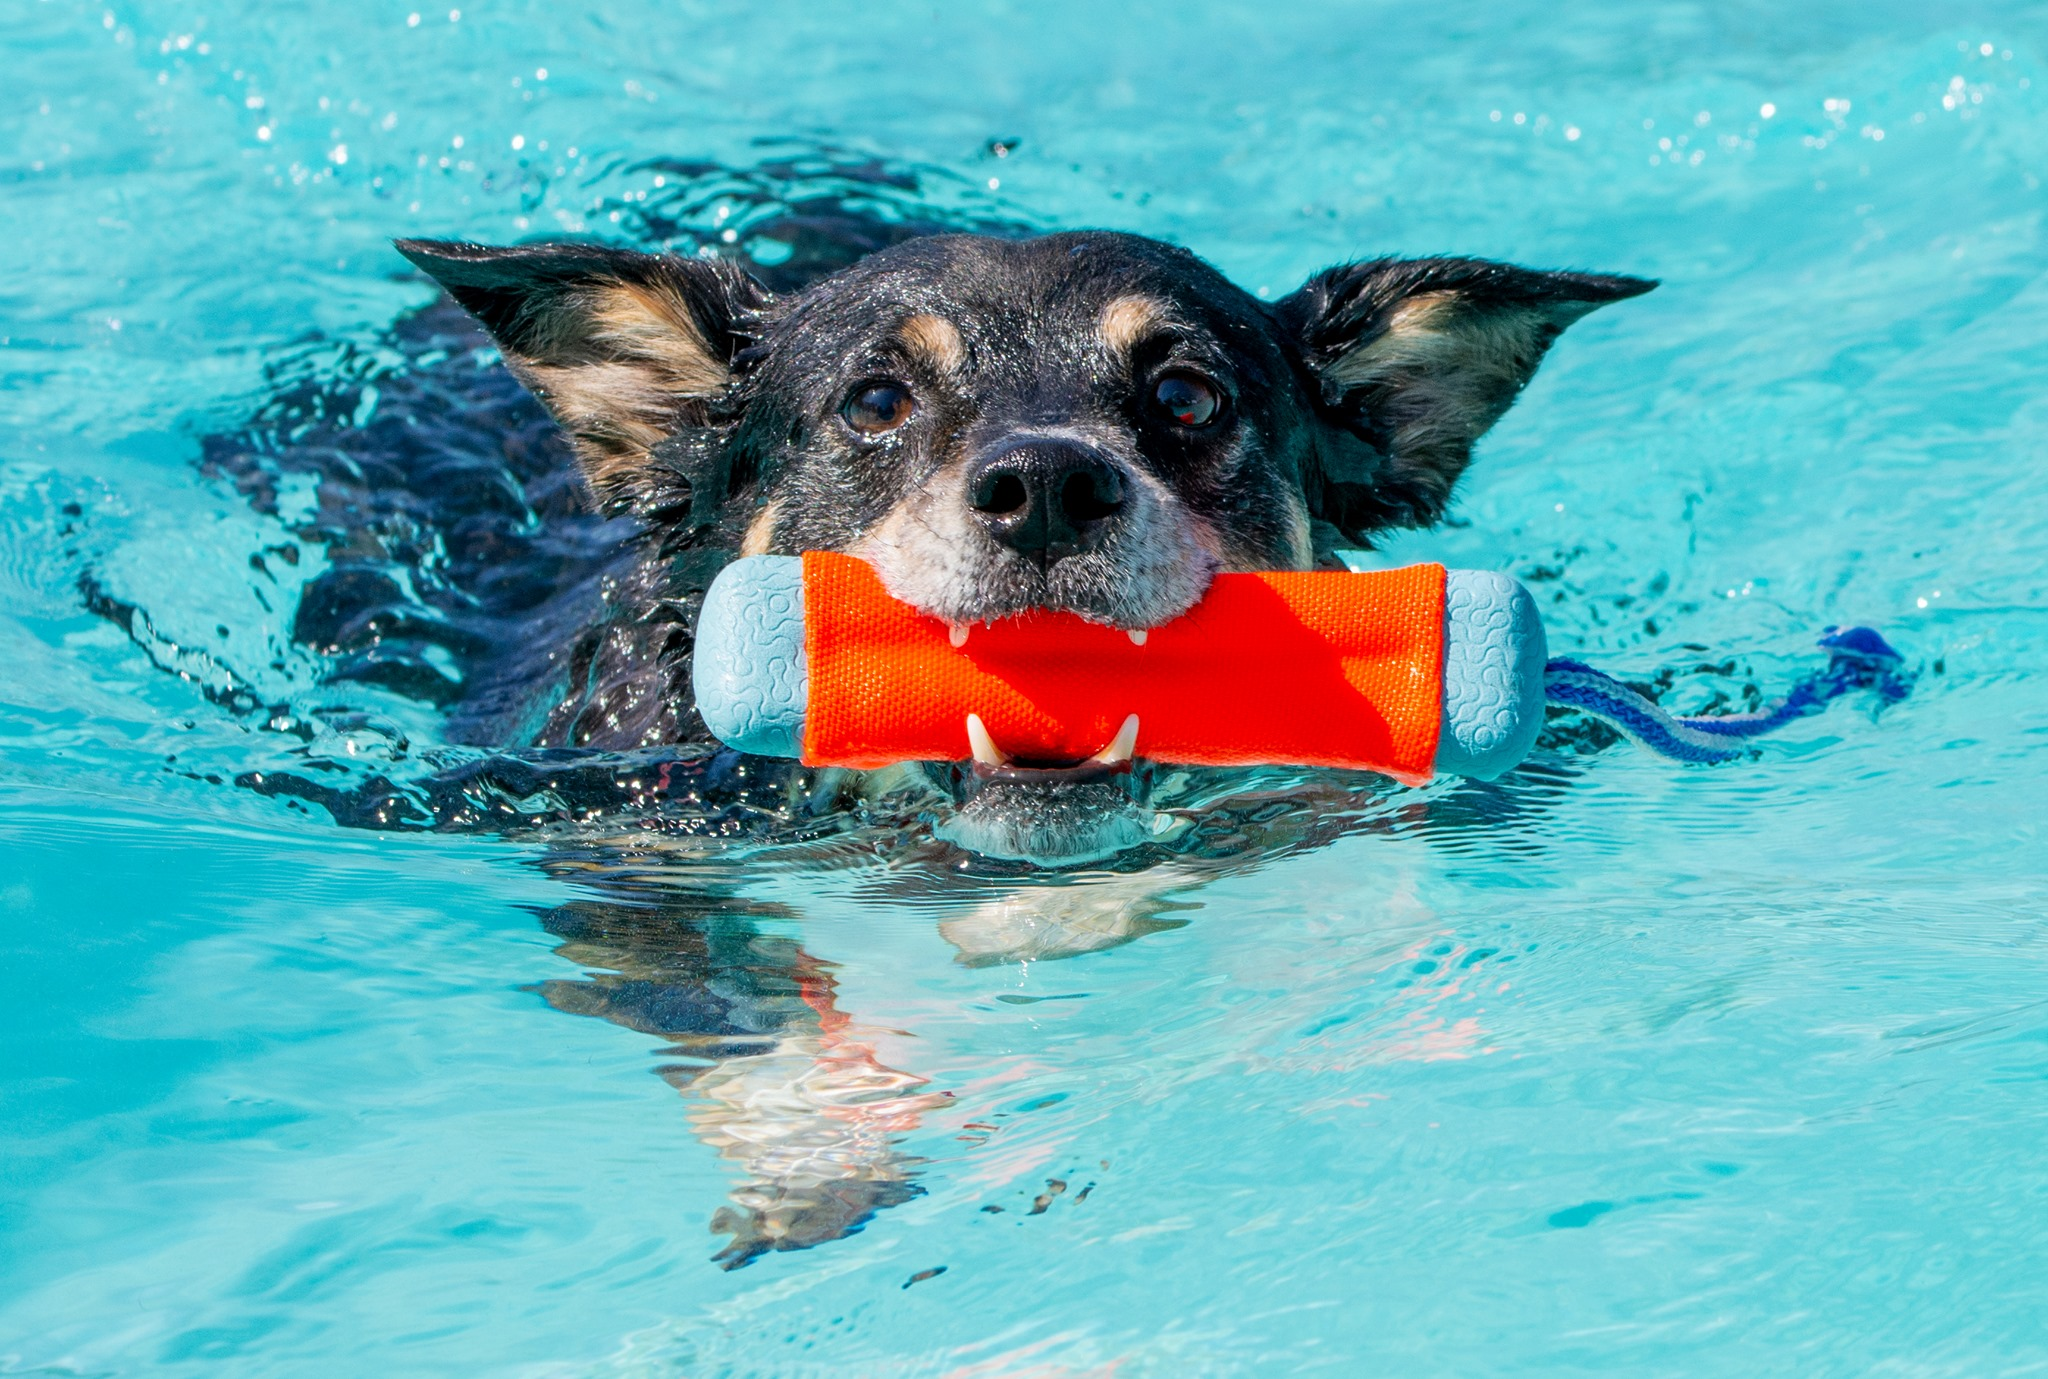 Black and brown dog in the water with orange and blue toy in its mouth